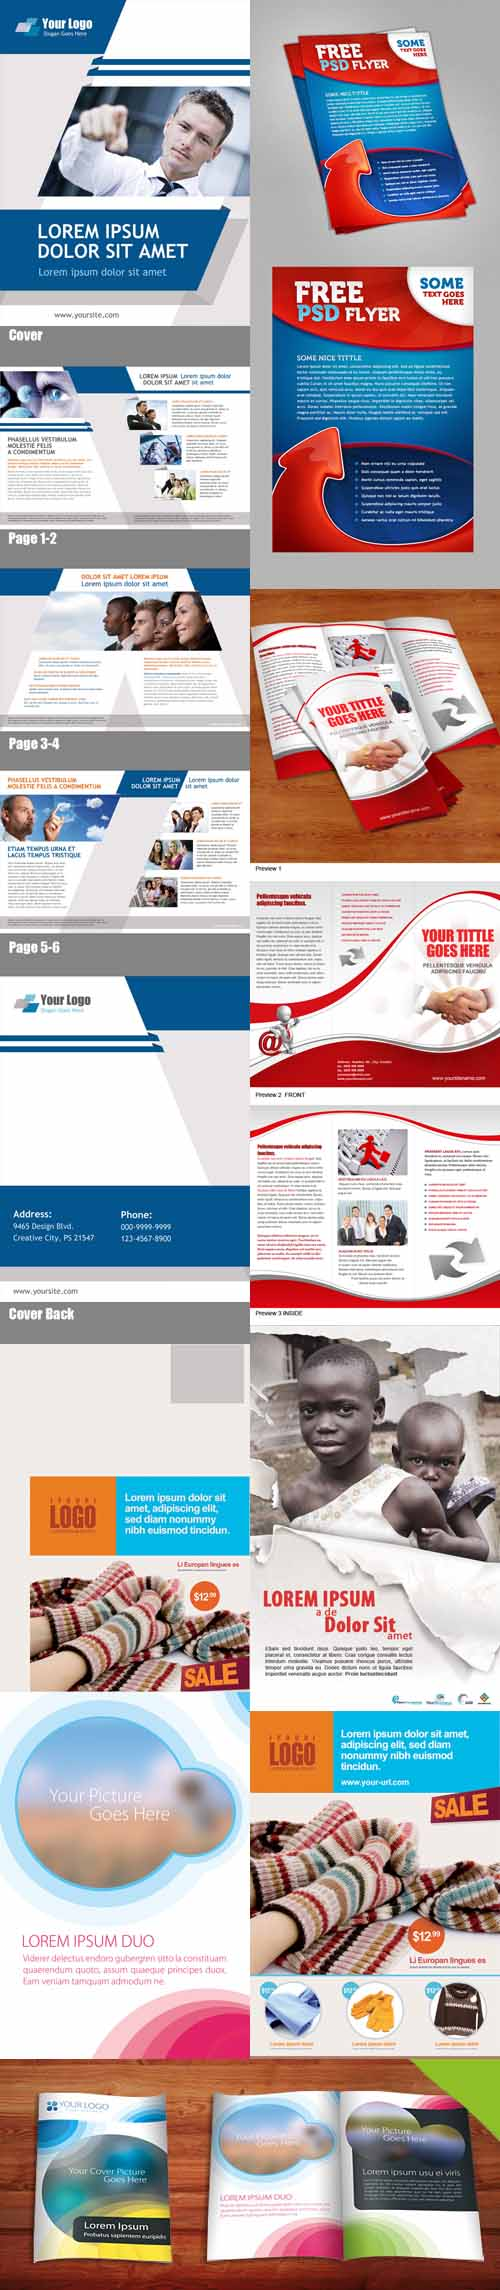 PSD Retail Marketing Postcard, Fold Brochure and Booklet Template